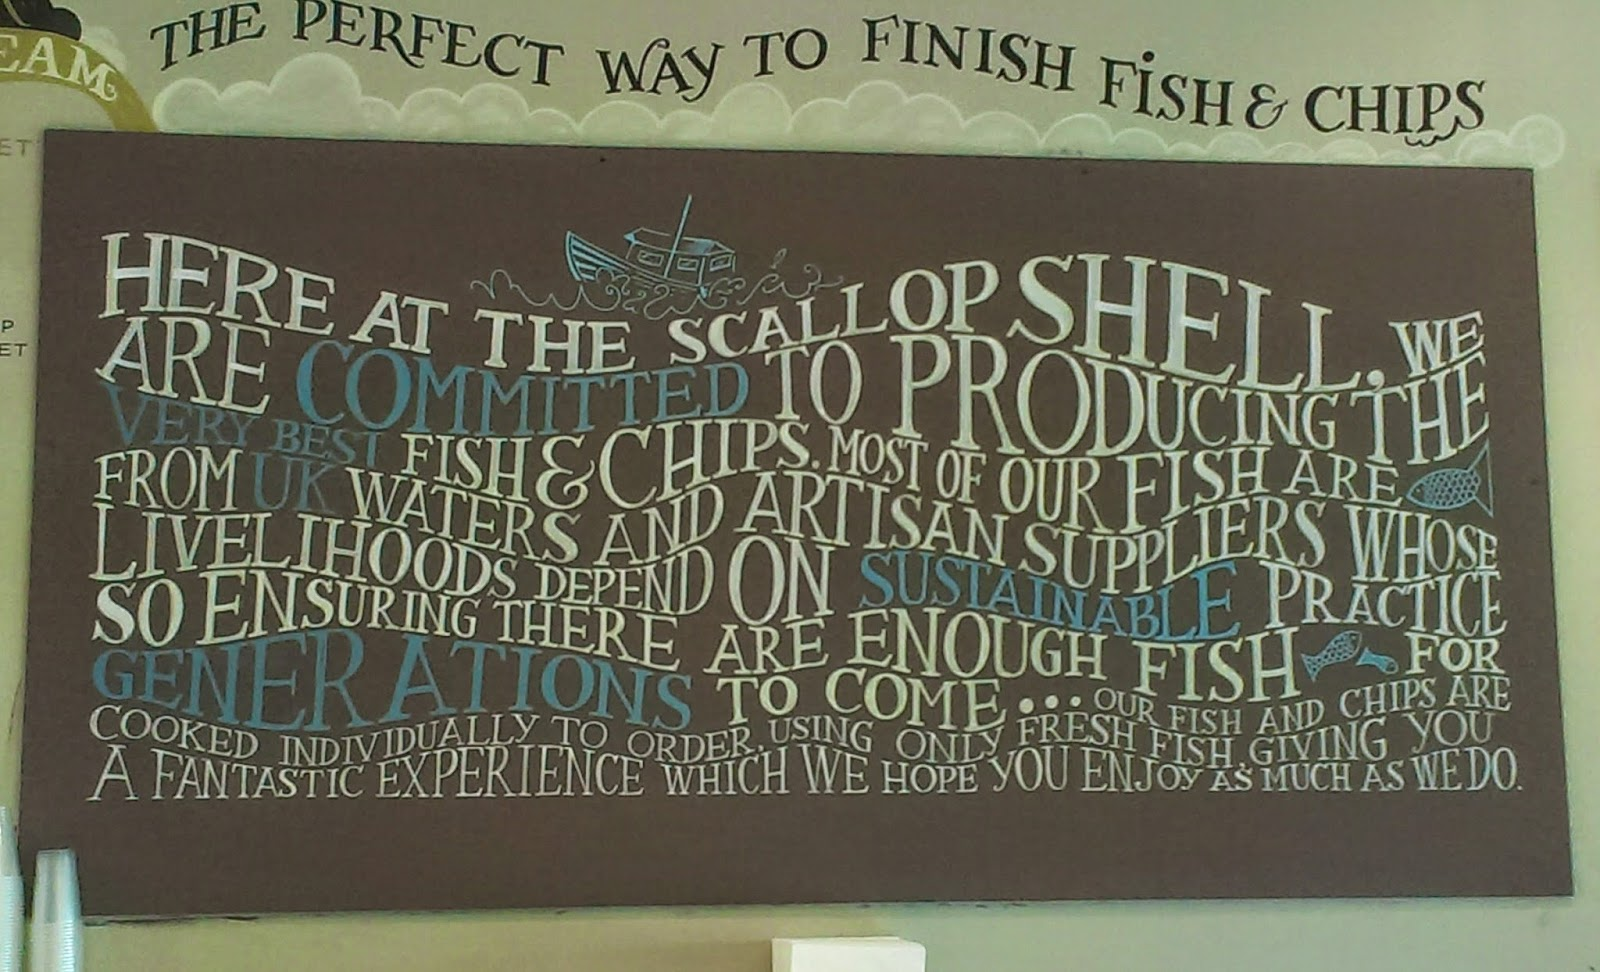 The Scallop Shell Beckington Ethos